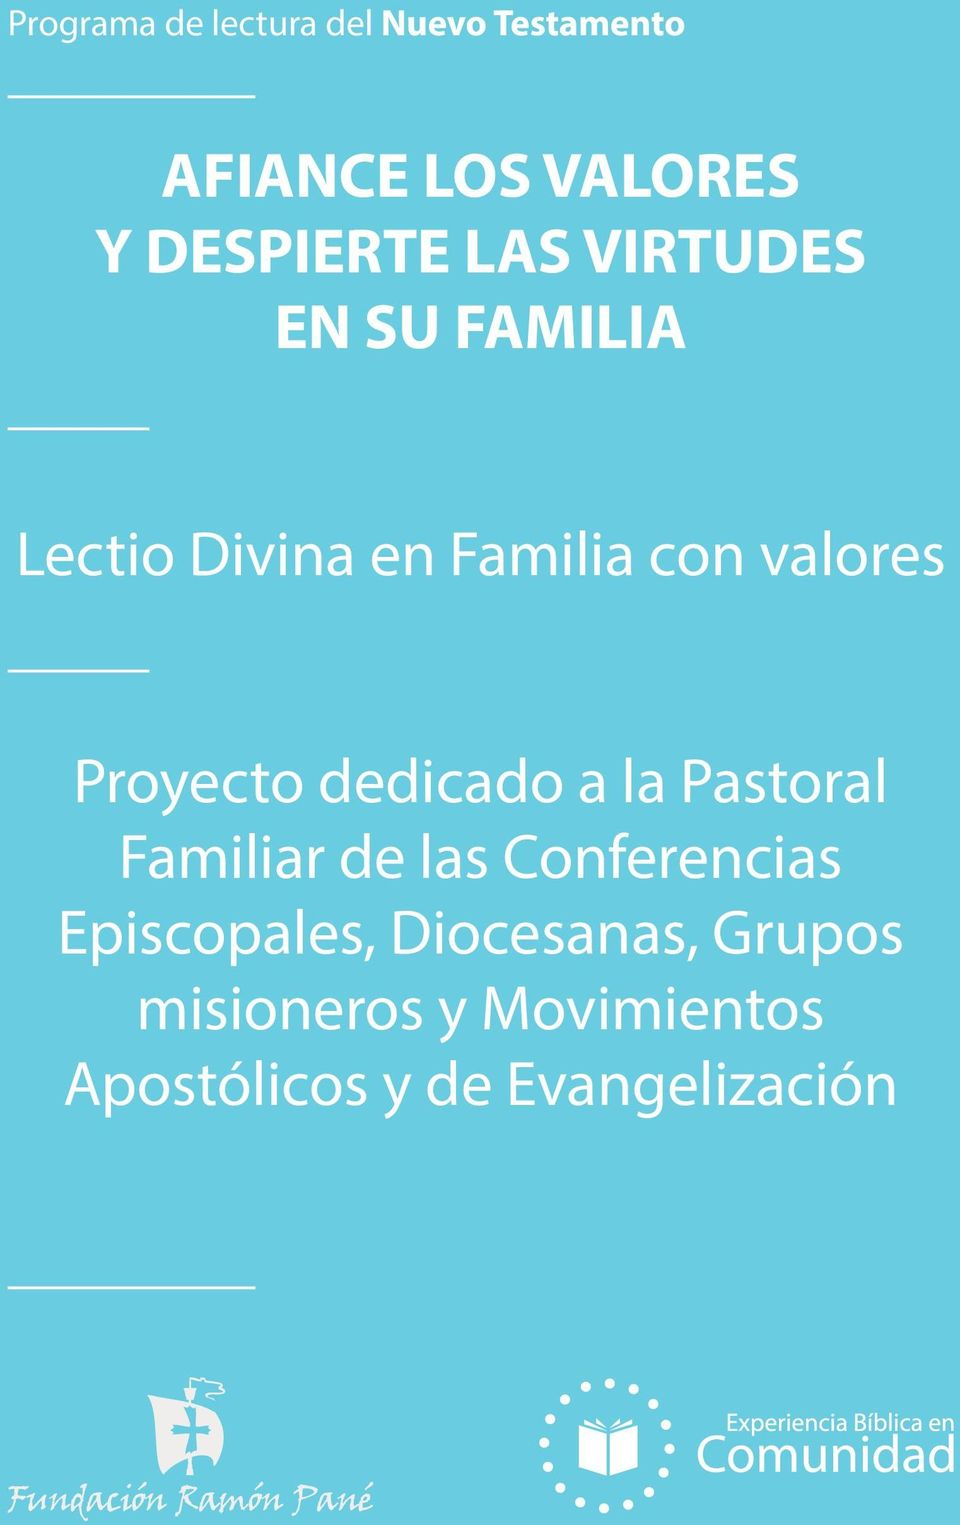 Pastoral Familiar de las Conferencias Episcopales,